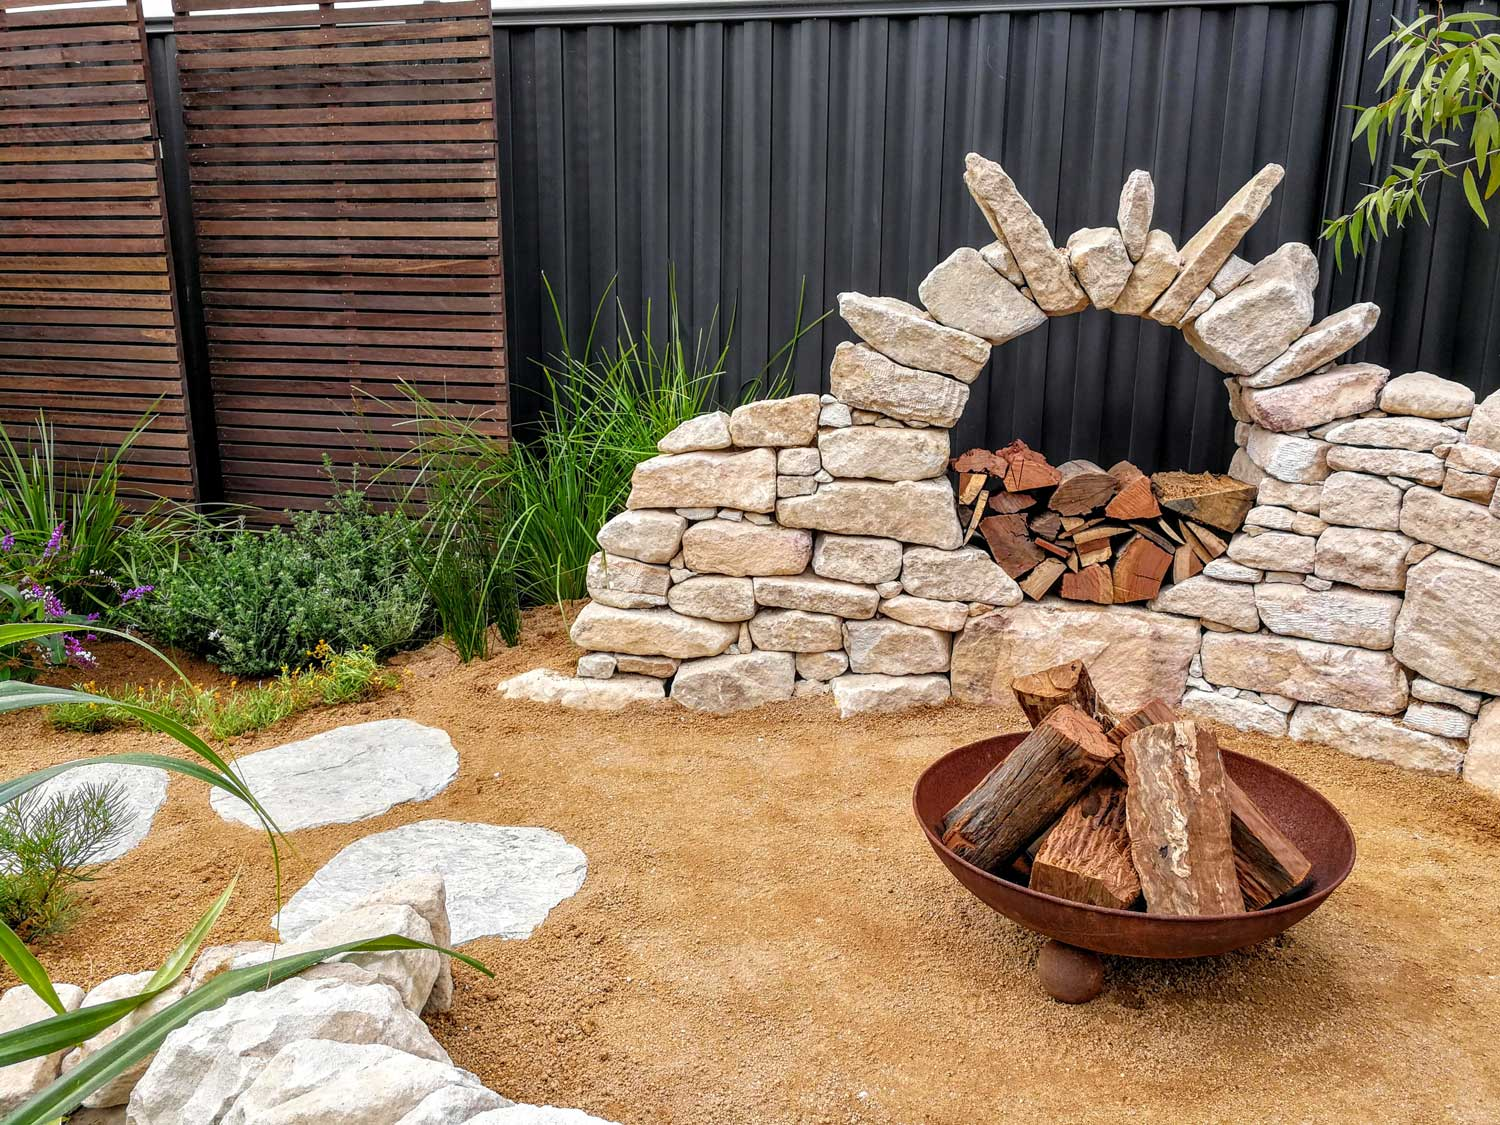 The magnificent moon gate constructed by the talented Liam Guthrie